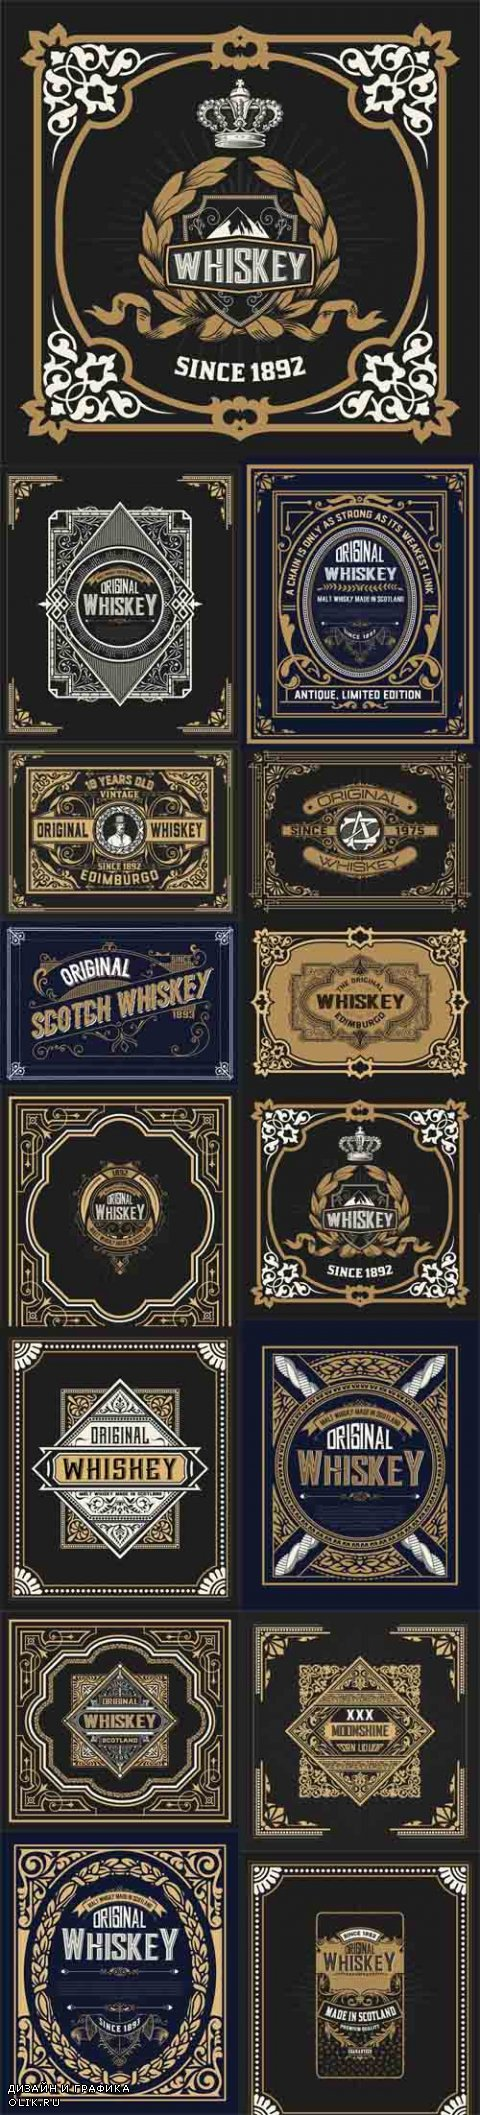 Vector Old label design for Whiskey and Wine label. Restaurant banner